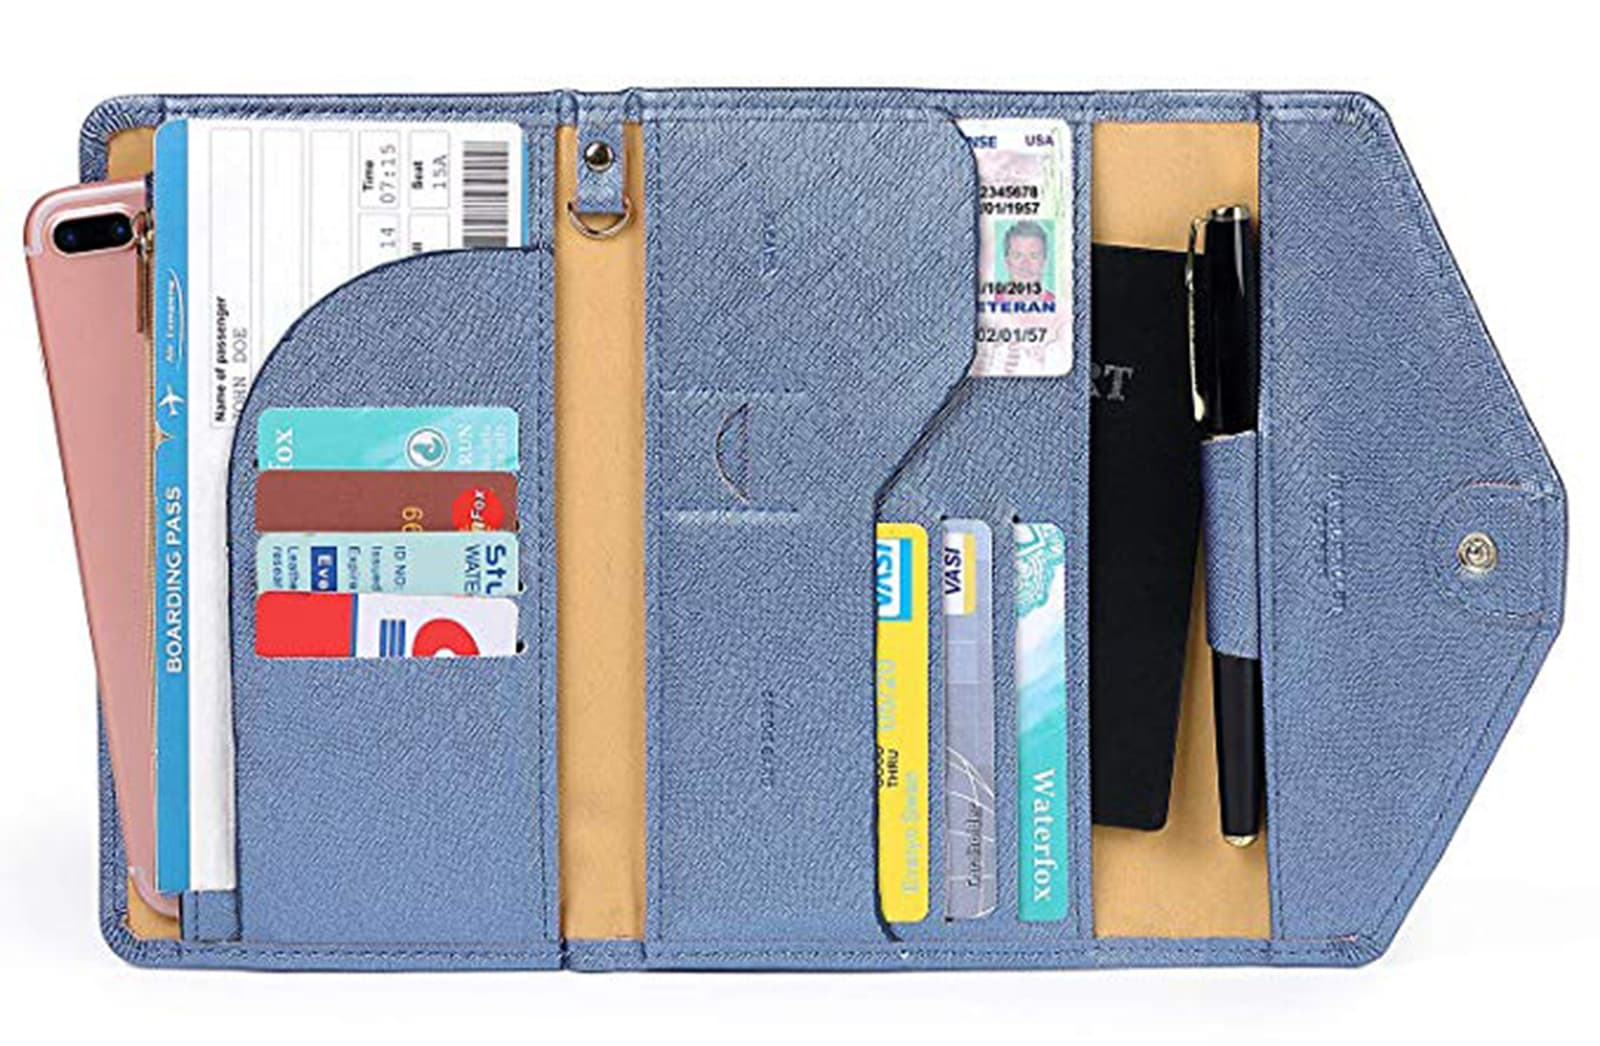 Zoppen Travel Wallet with credit cards and IDs